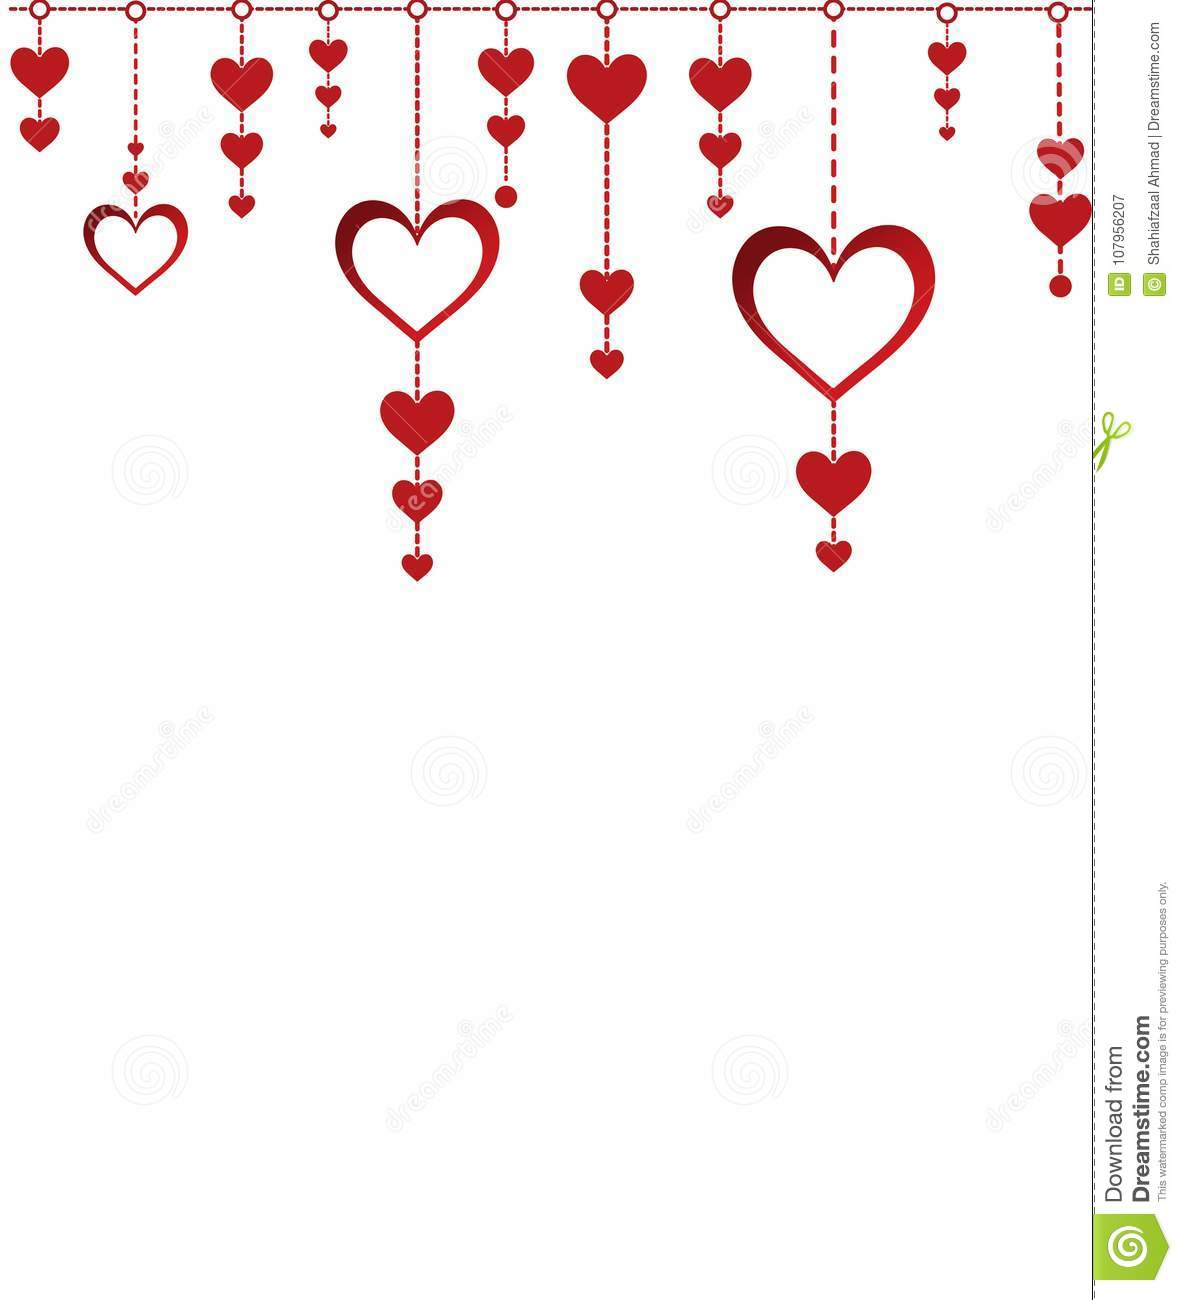 Happy Valentine Day Illustration Design Windcharm Stock Vector